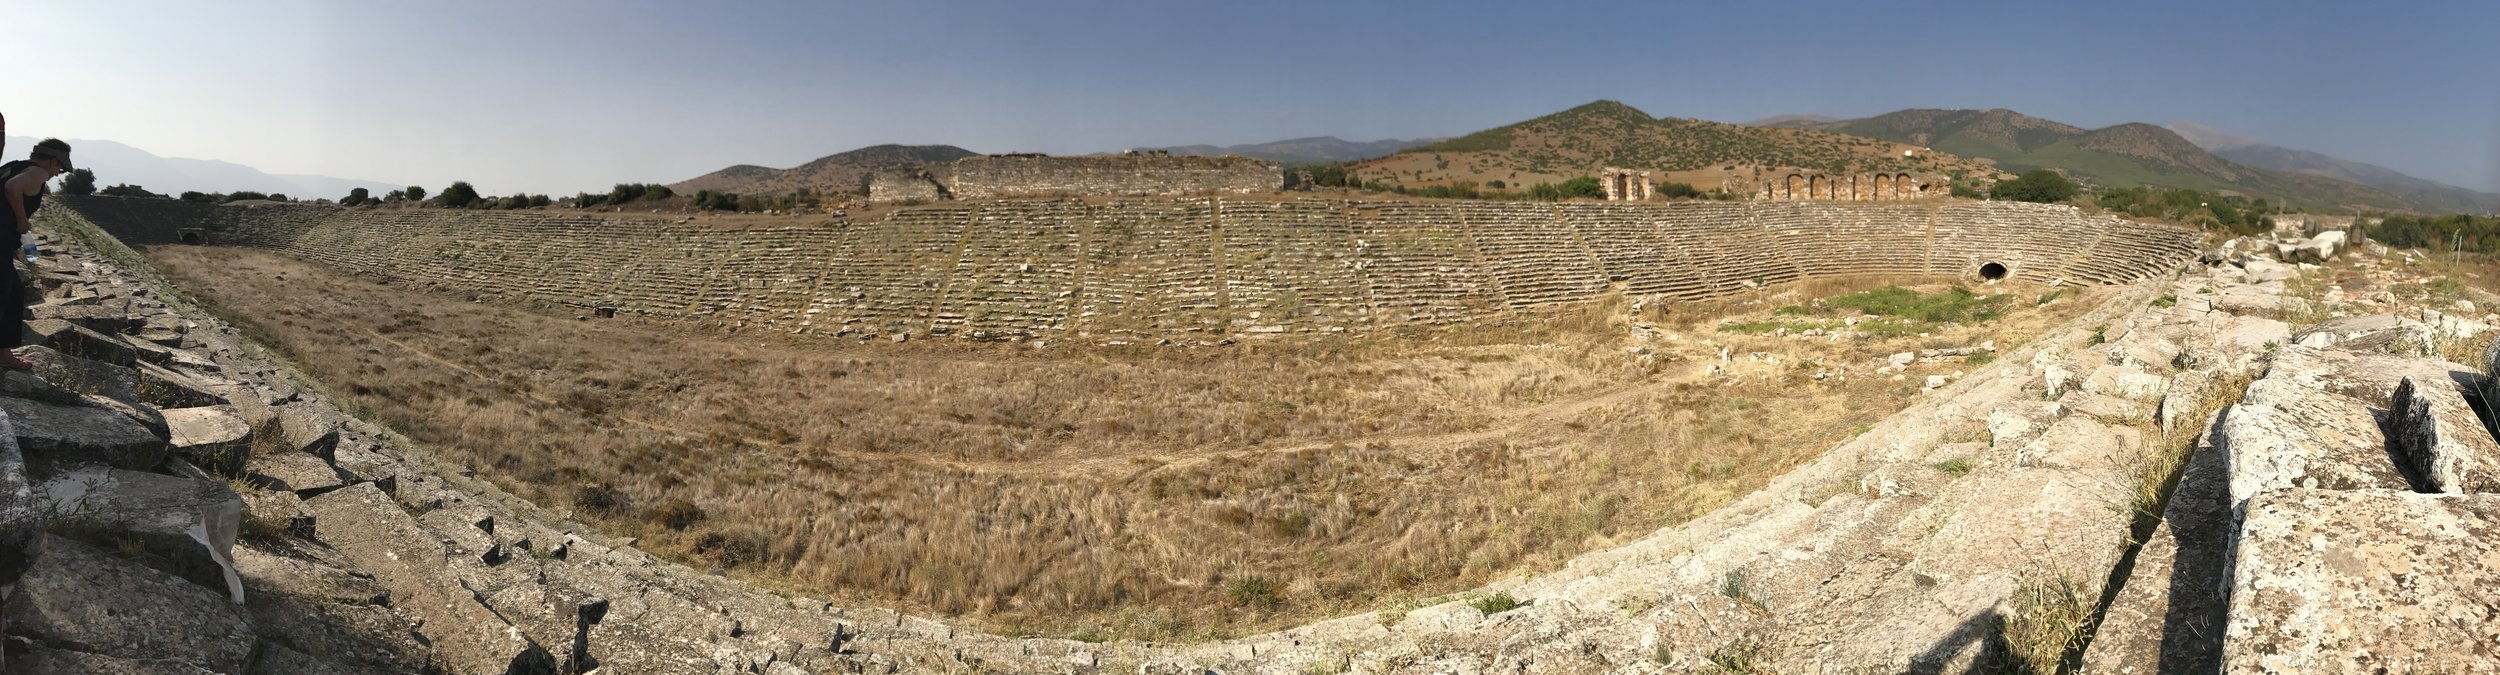 Panoramic vista of a ruin. Miles of ancient cities.